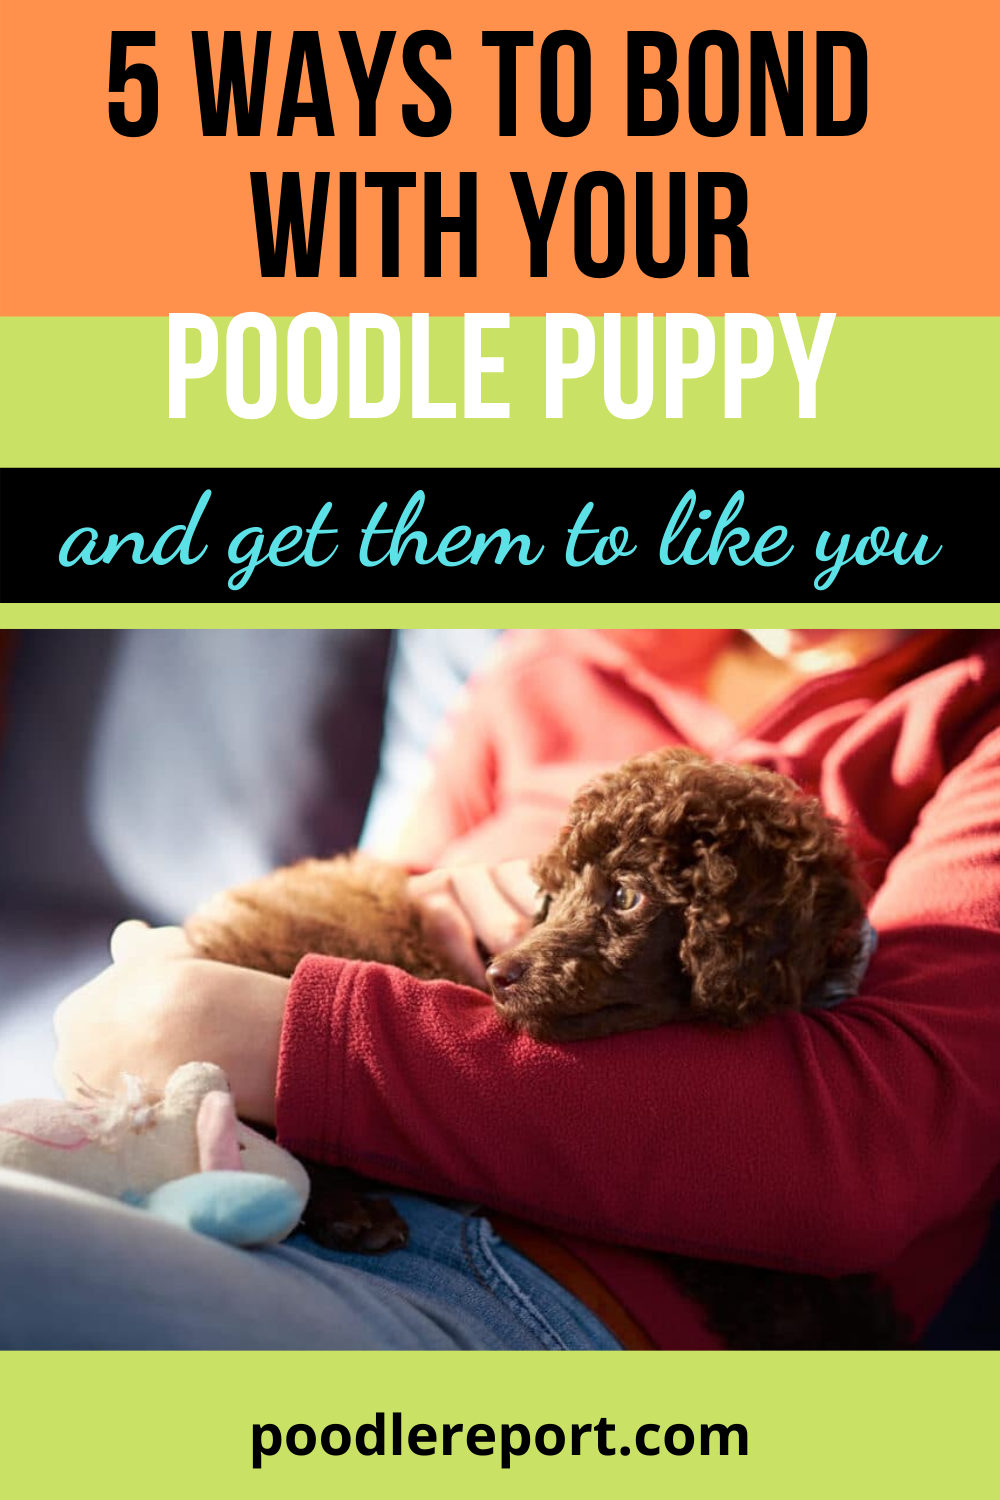 Poodles are smart and intelligent kind of dogs. How to make bond with your poodle puppy and get them to like you? Here is the complete guide #poodlepuppy#poodlecare#poodlefacts